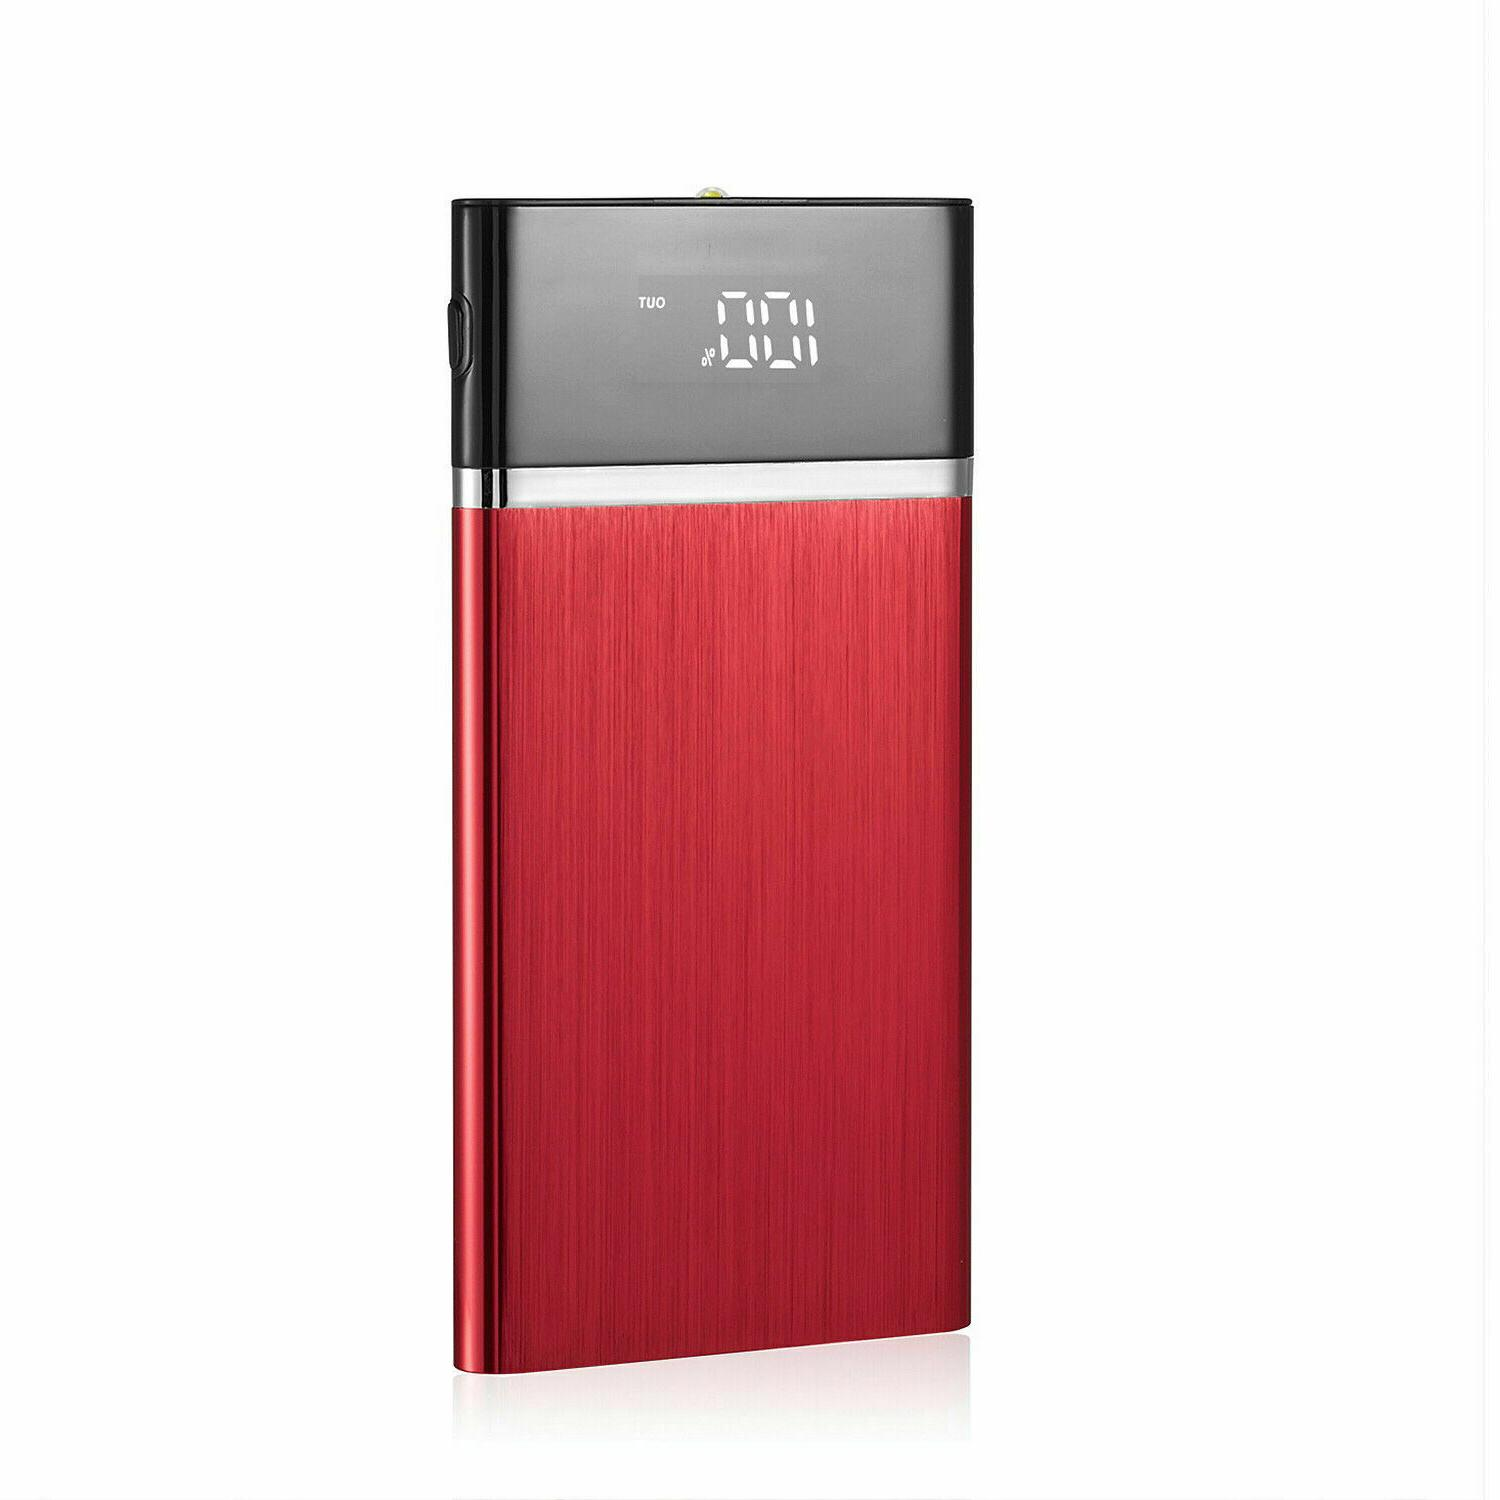 2019 Battery Huge Capacity Bank 900000mAh Charger